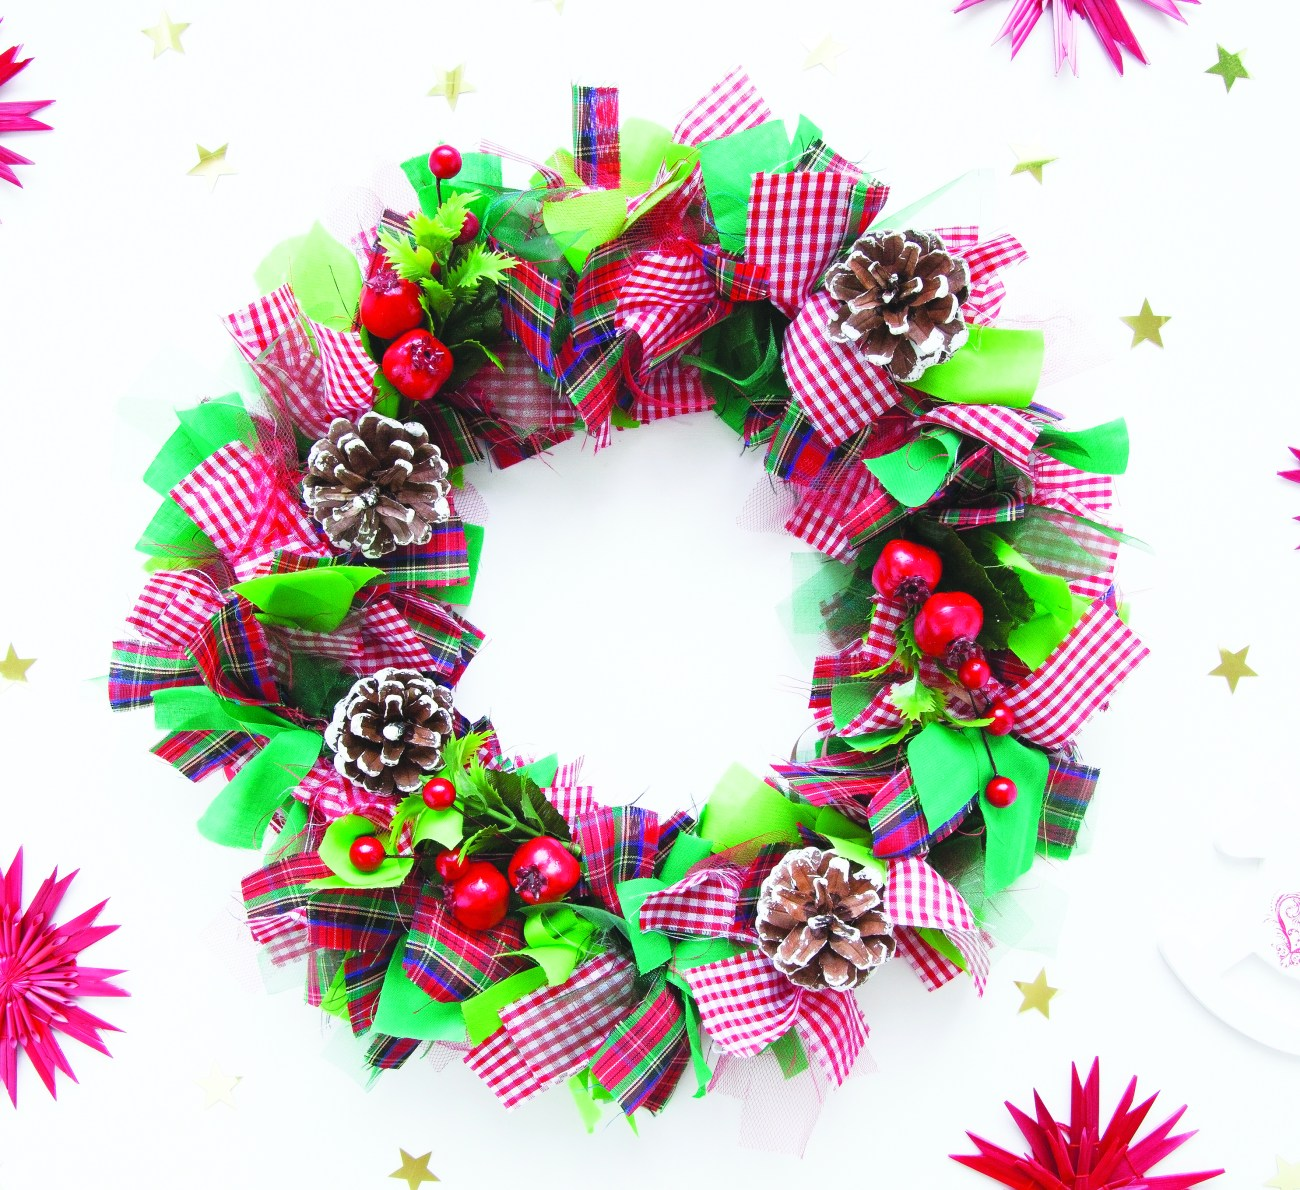 Christmas wreath made of colorful ribbons, cones, candy canes, poinsettia petals and artificial holly berries. White background.